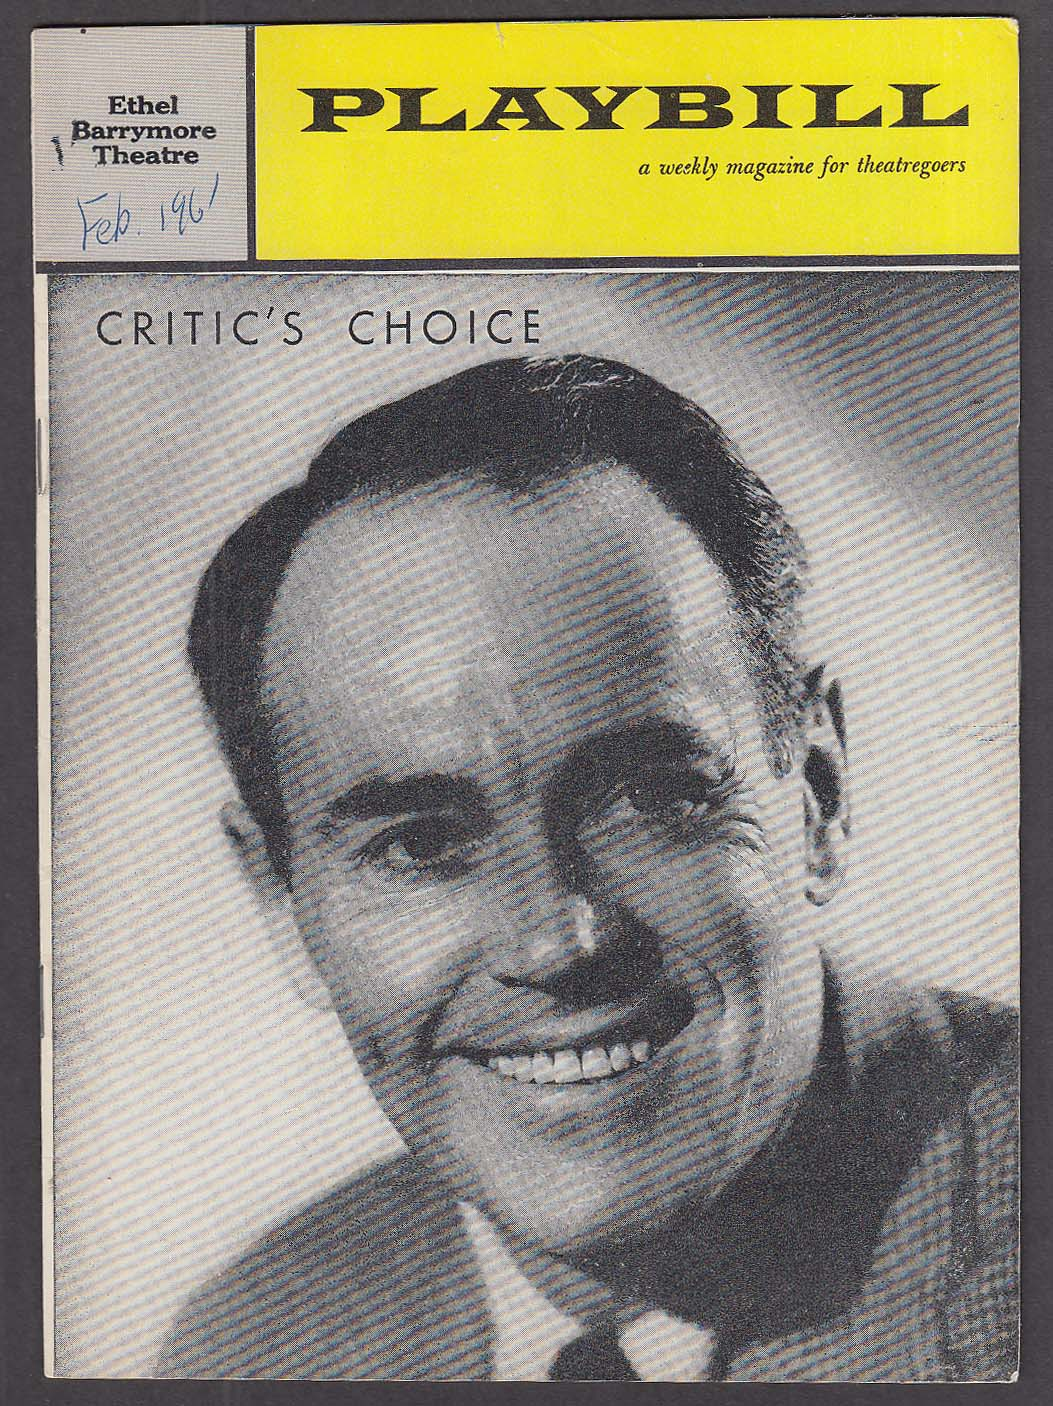 Image for Henry Fonda Critic's Choice 1st run Playbill 1961